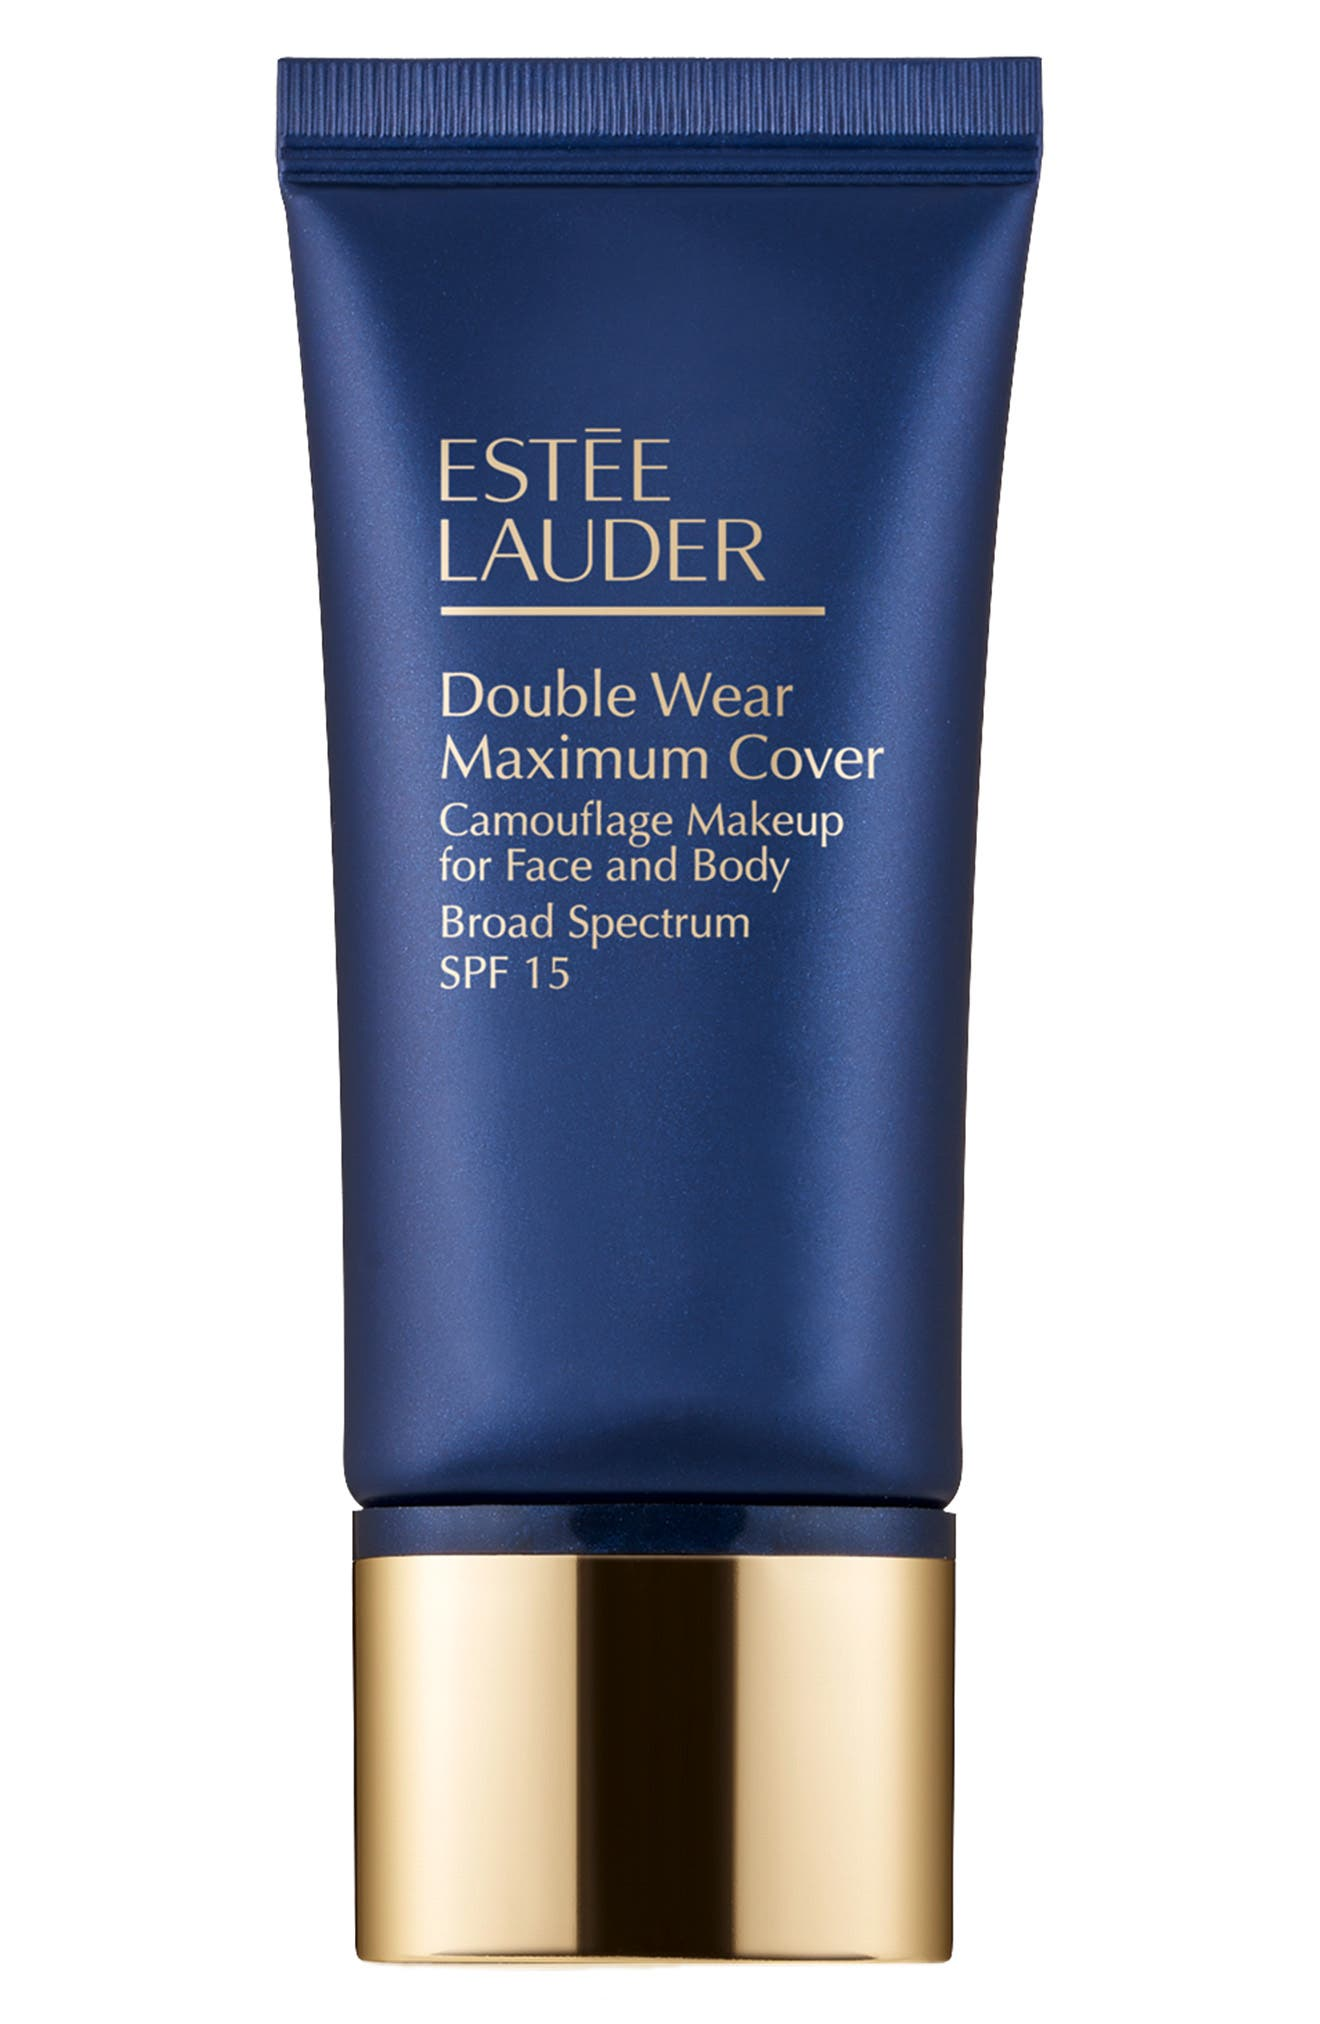 Double Wear Maximum Cover Camouflage Makeup for Face and Body SPF 15,                             Main thumbnail 2, color,